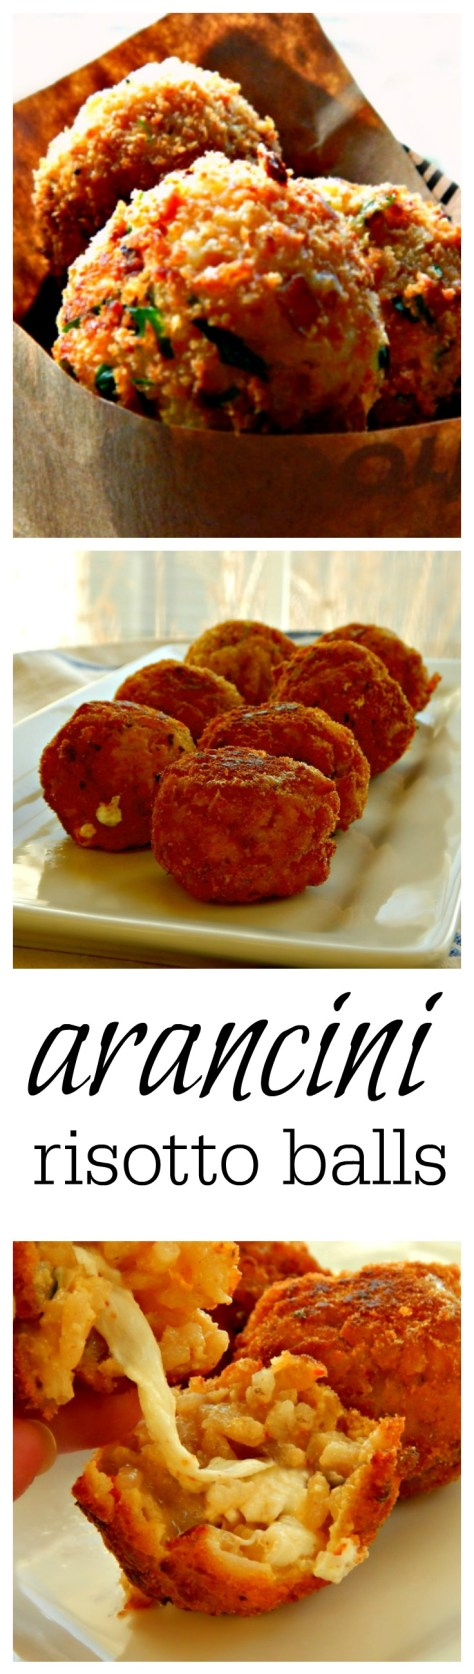 breaded and fried balls of risotto stuffed with cheese!